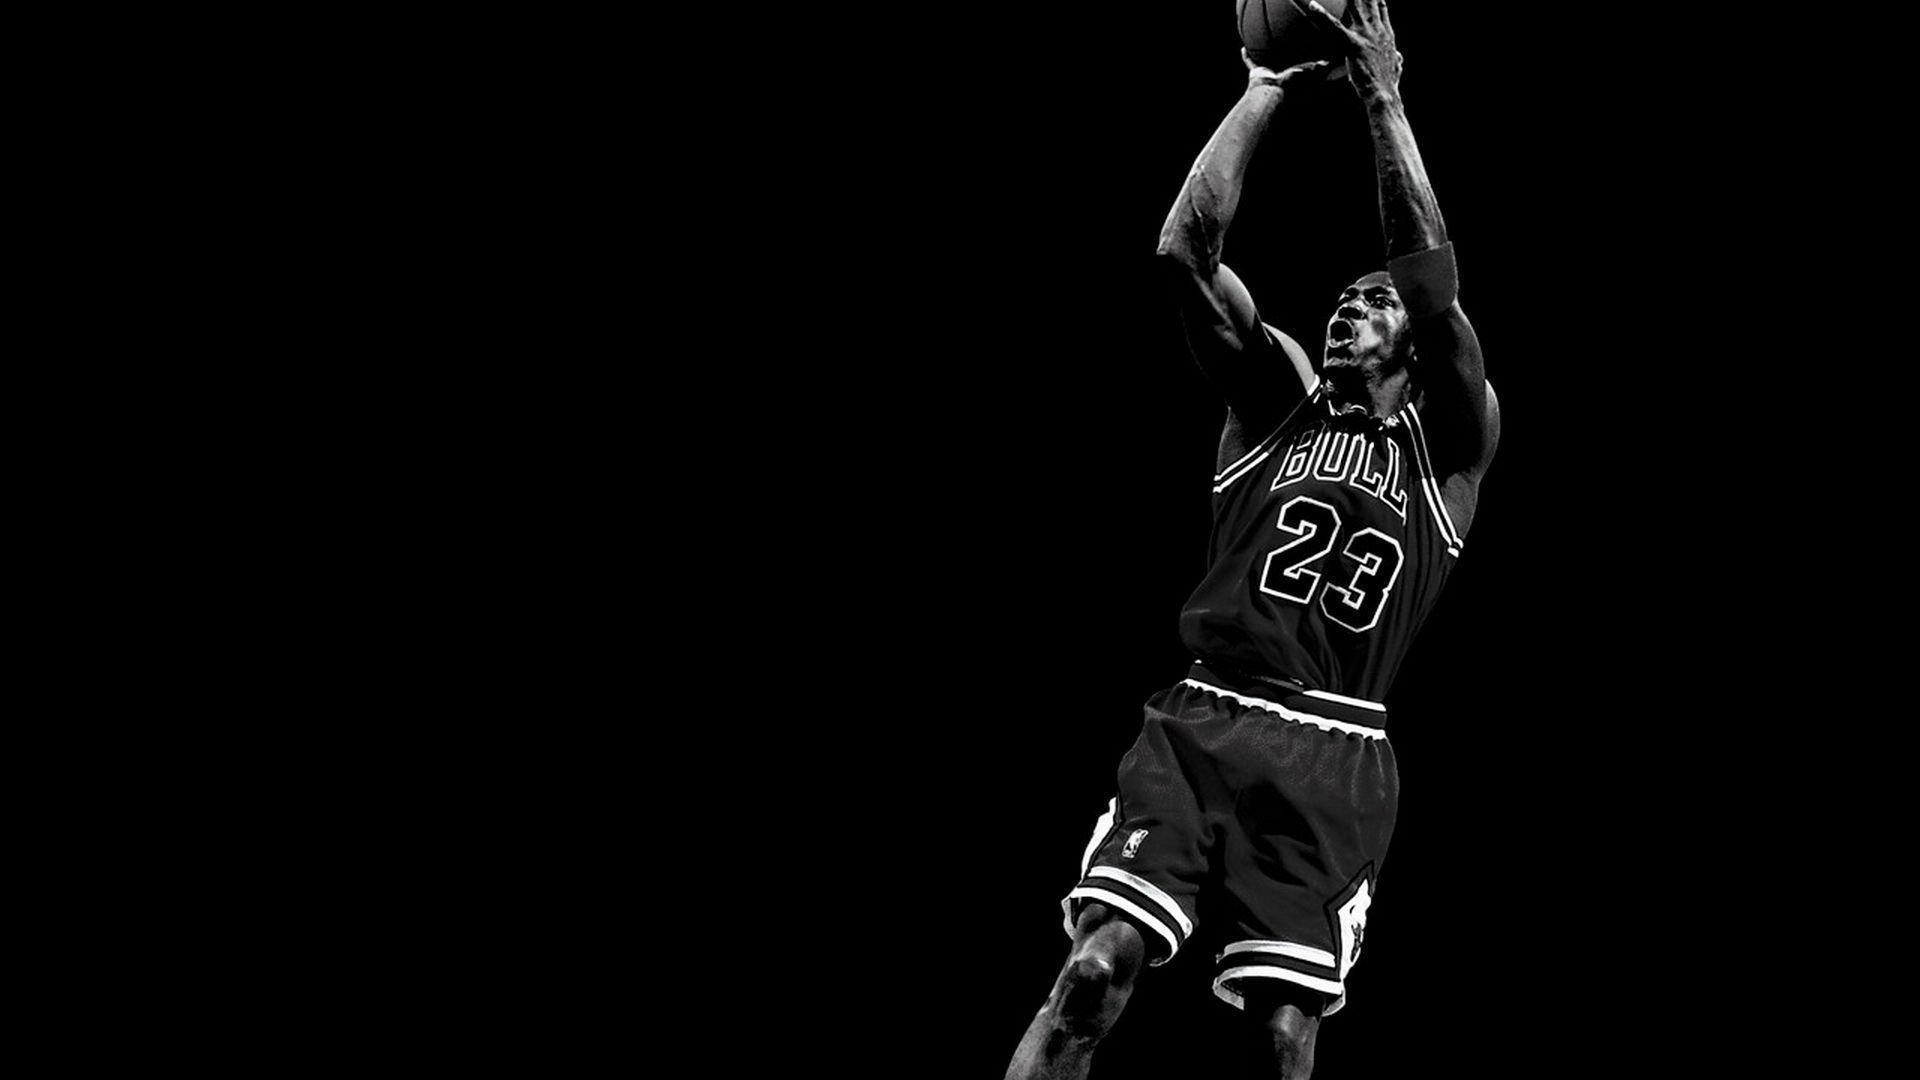 Michael Jordan HD Wallpapers - Wallpaper Cave Basketball Players Wallpapers White